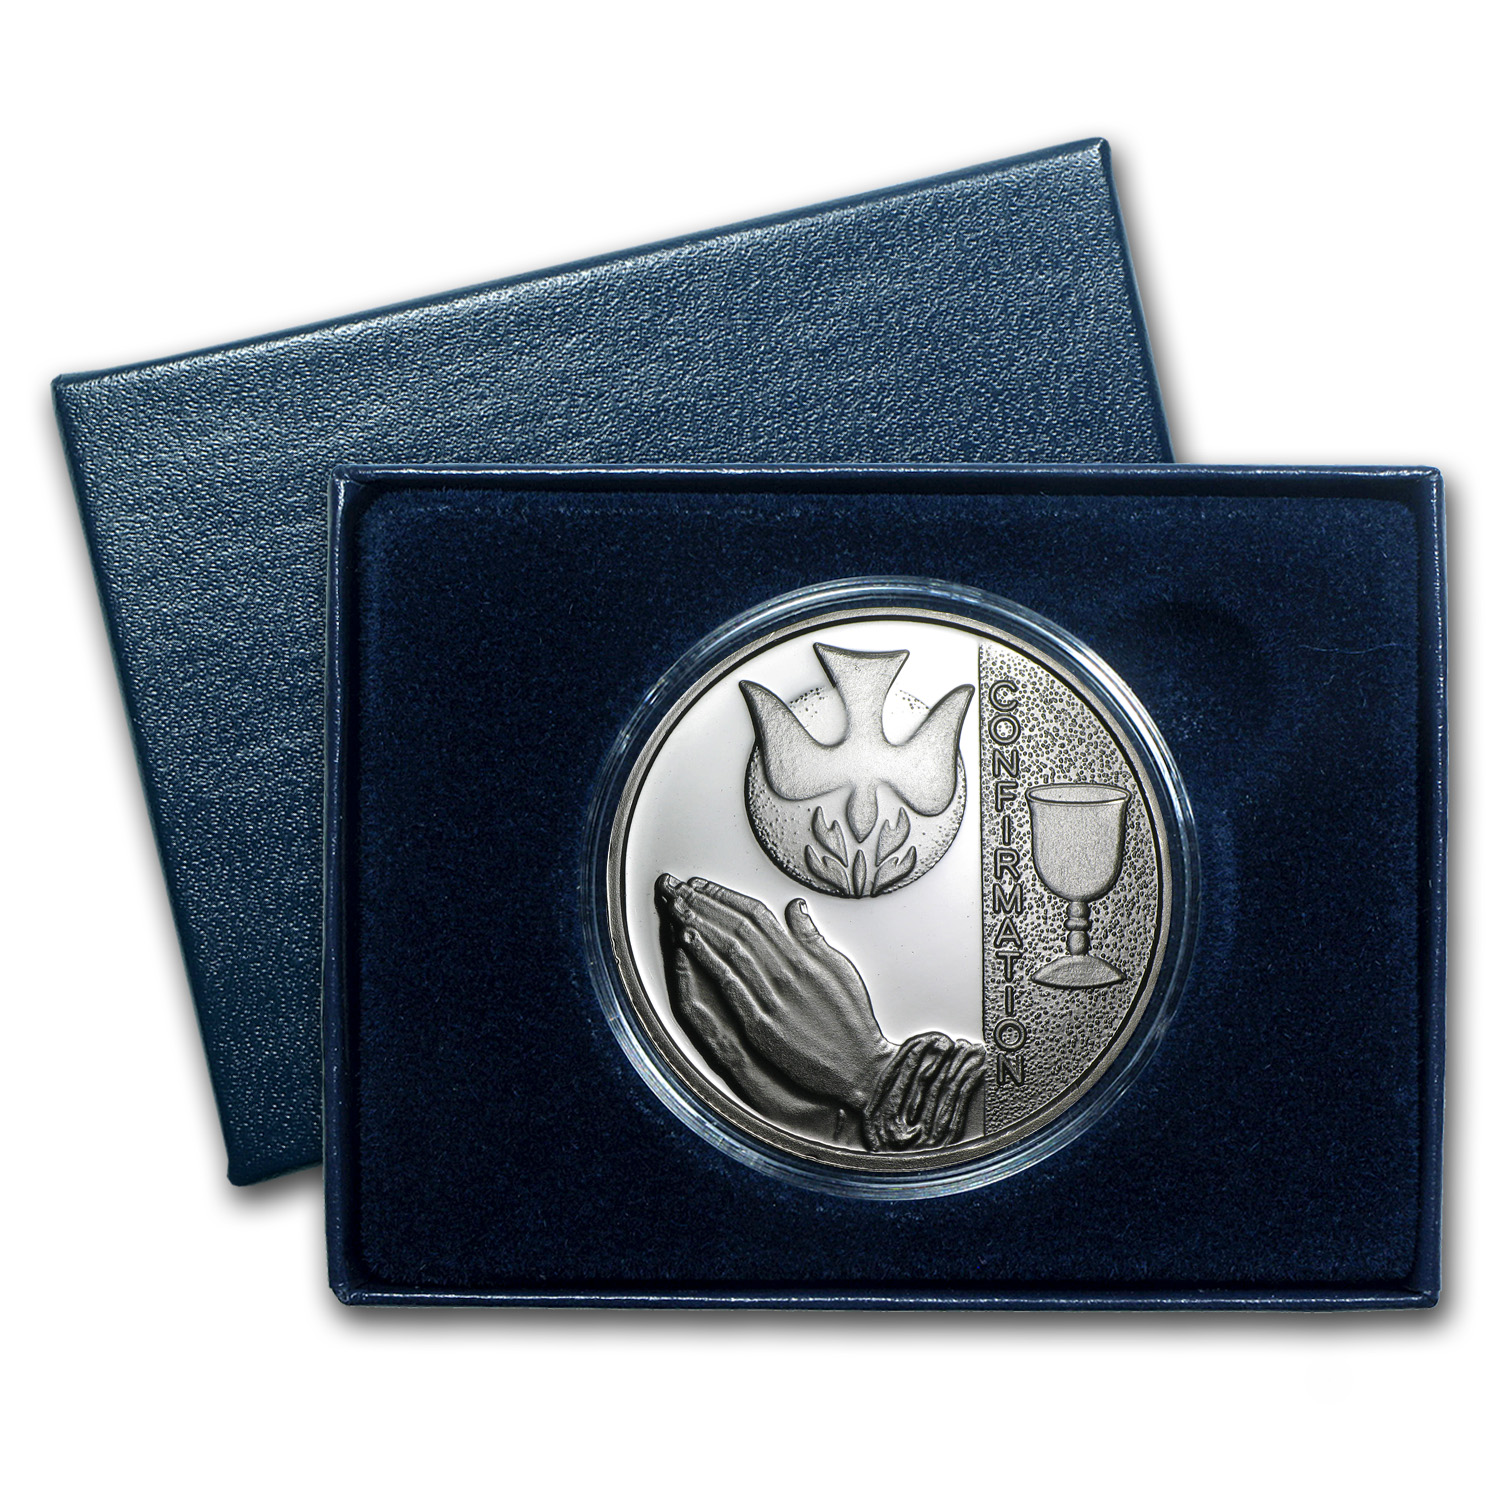 2014 1 oz Silver Rounds - Confirmation (w/Box & Capsule)